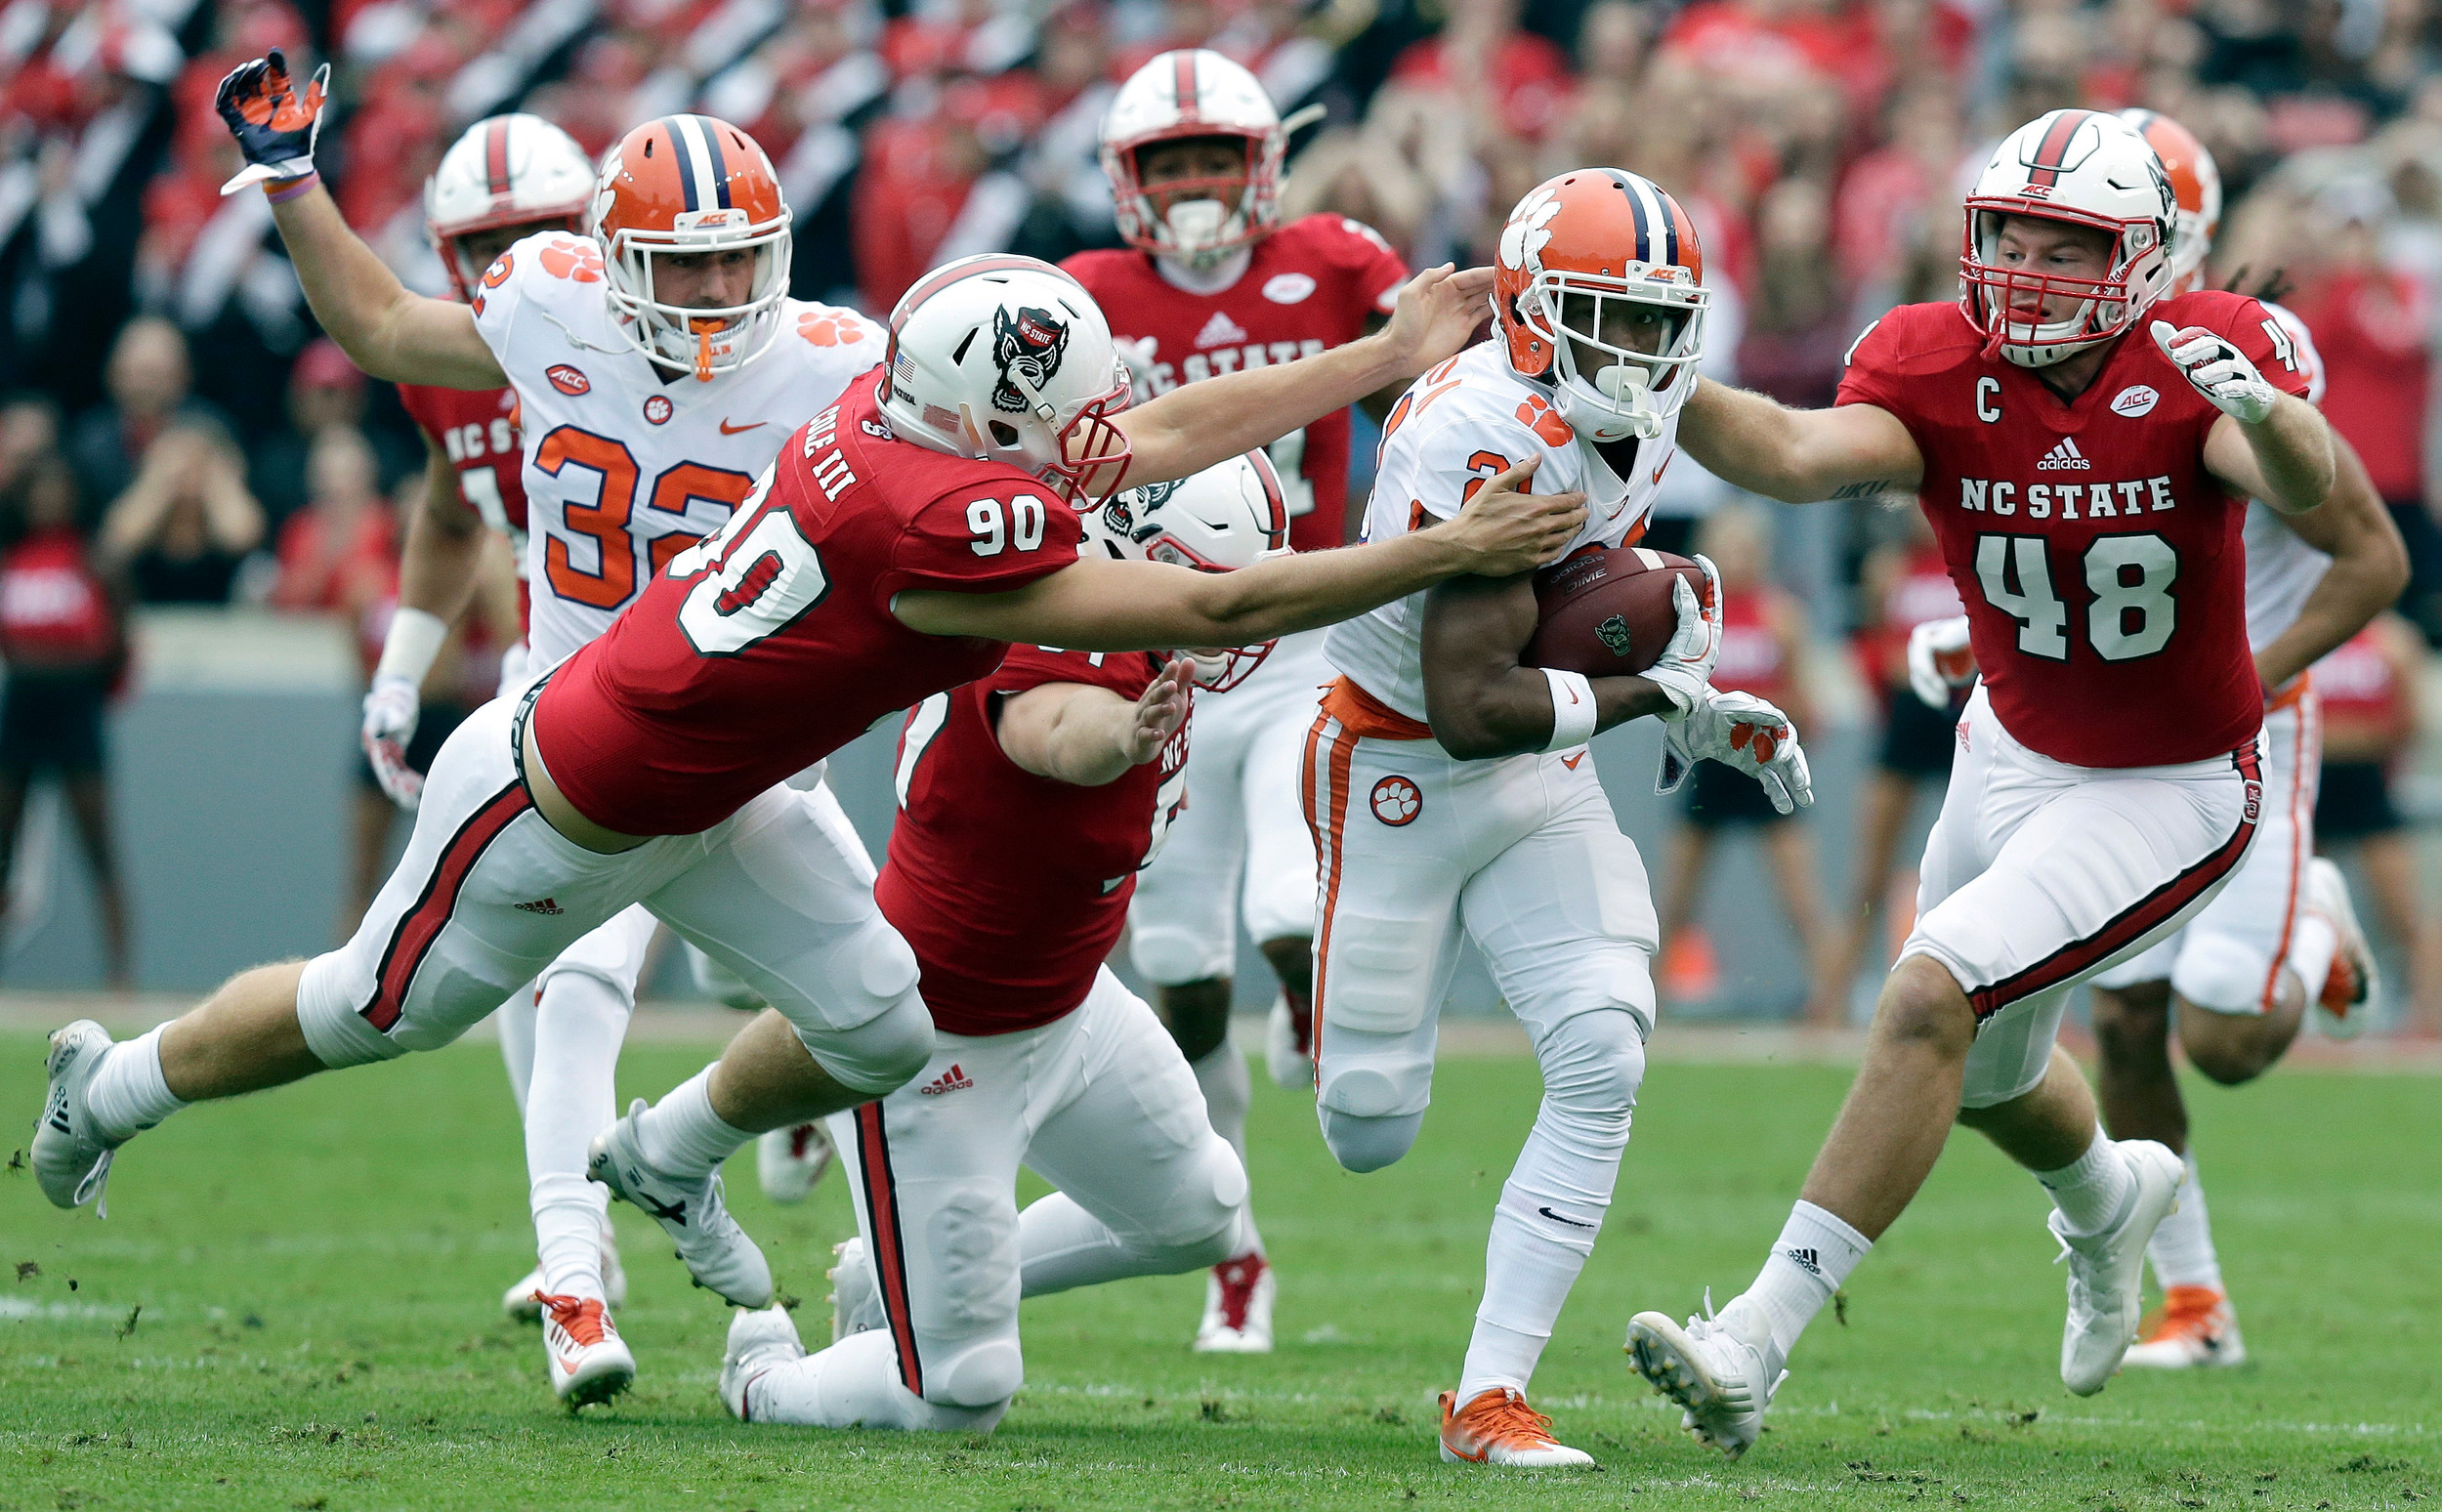 THE ASSOCIATED PRESSClemson's Ray-Ray McCloud runs past North Carolina State's Ben Frazier (90) and Cole Cook (48) on the way to a touchdown in the Tigers' 38-31 victory on Saturday in Raleigh.